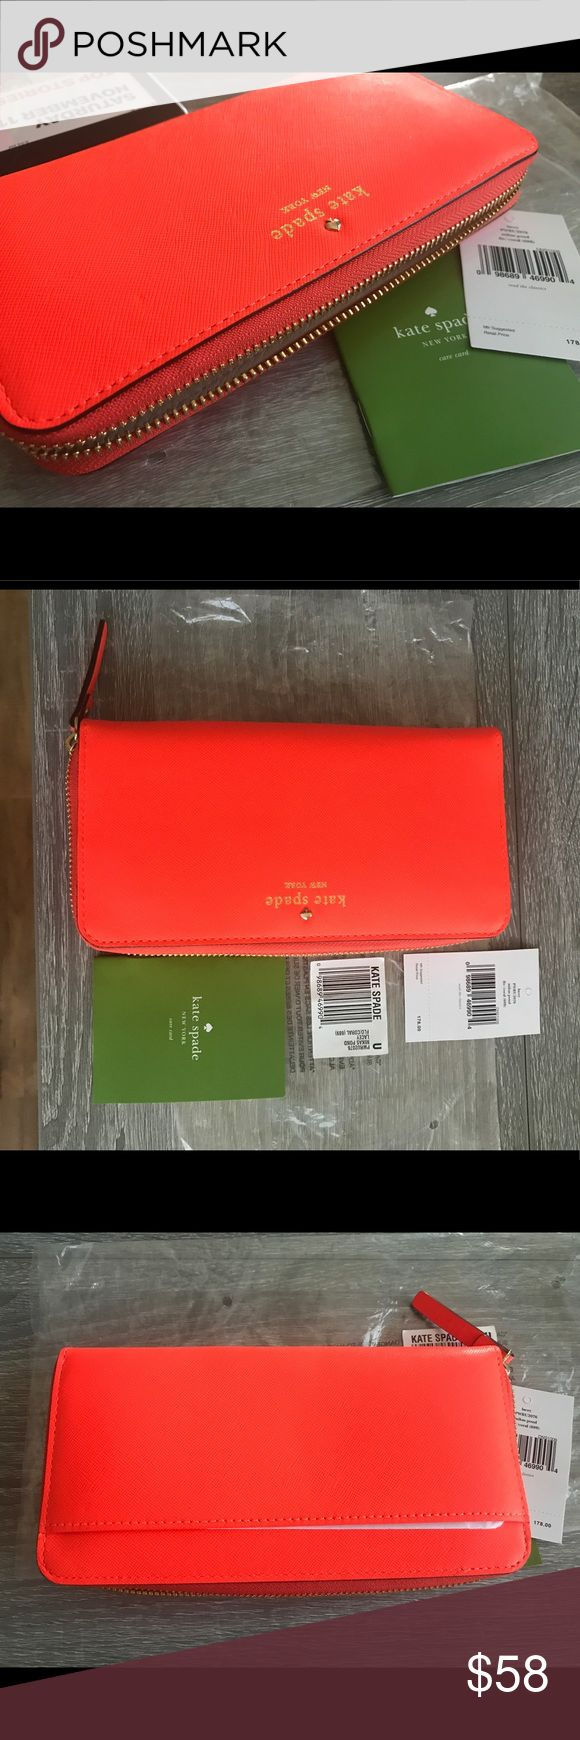 Kate Spade Mikas Pond Zip around wallet NWT New with tags, purchased from store but end up never using it. Bright orange color, saffiano leather. kate spade Bags Wallets